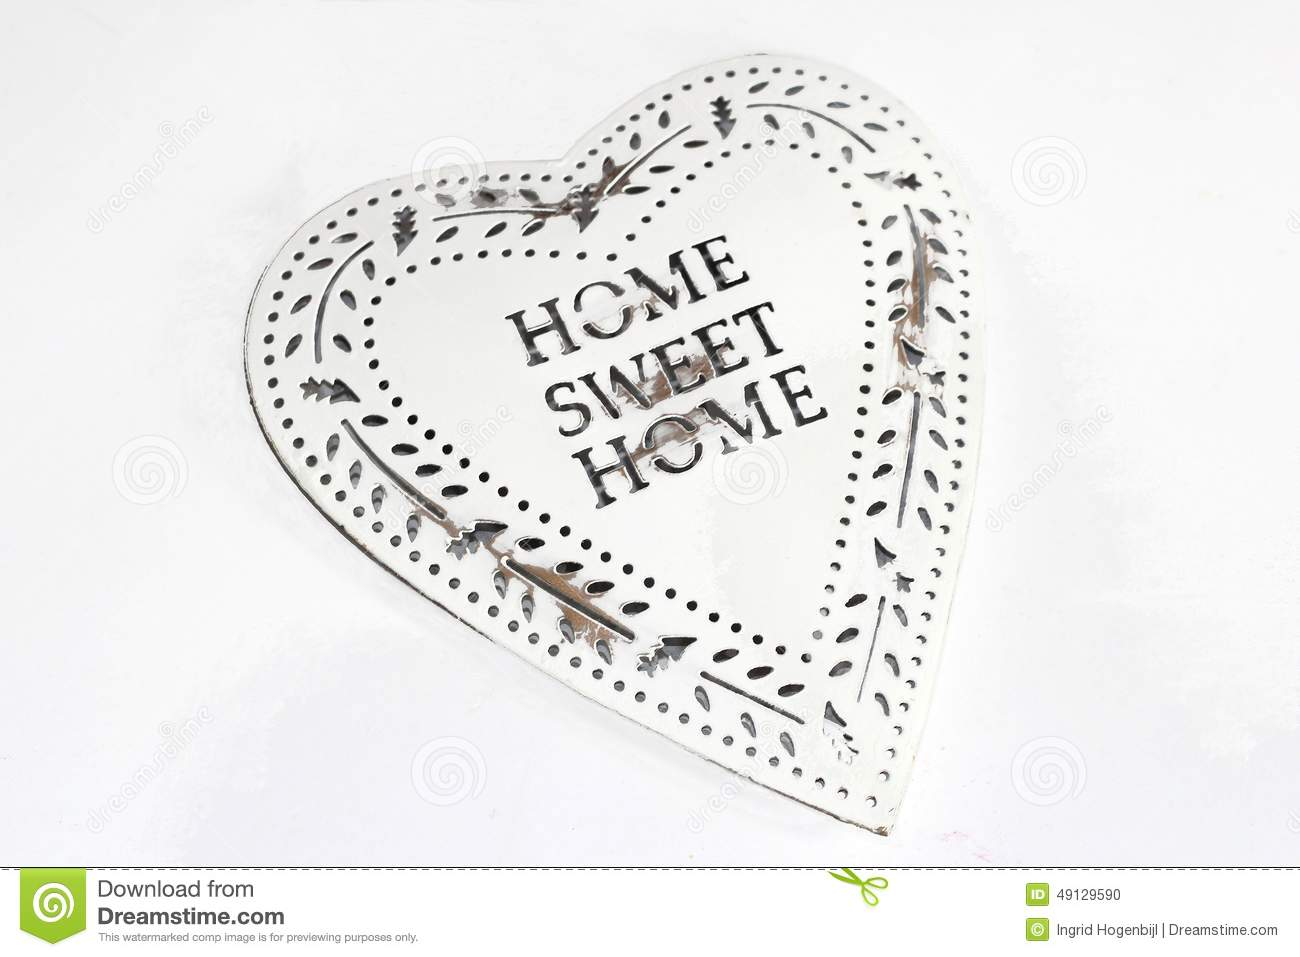 Retro vintage style heart, Home Sweet Home